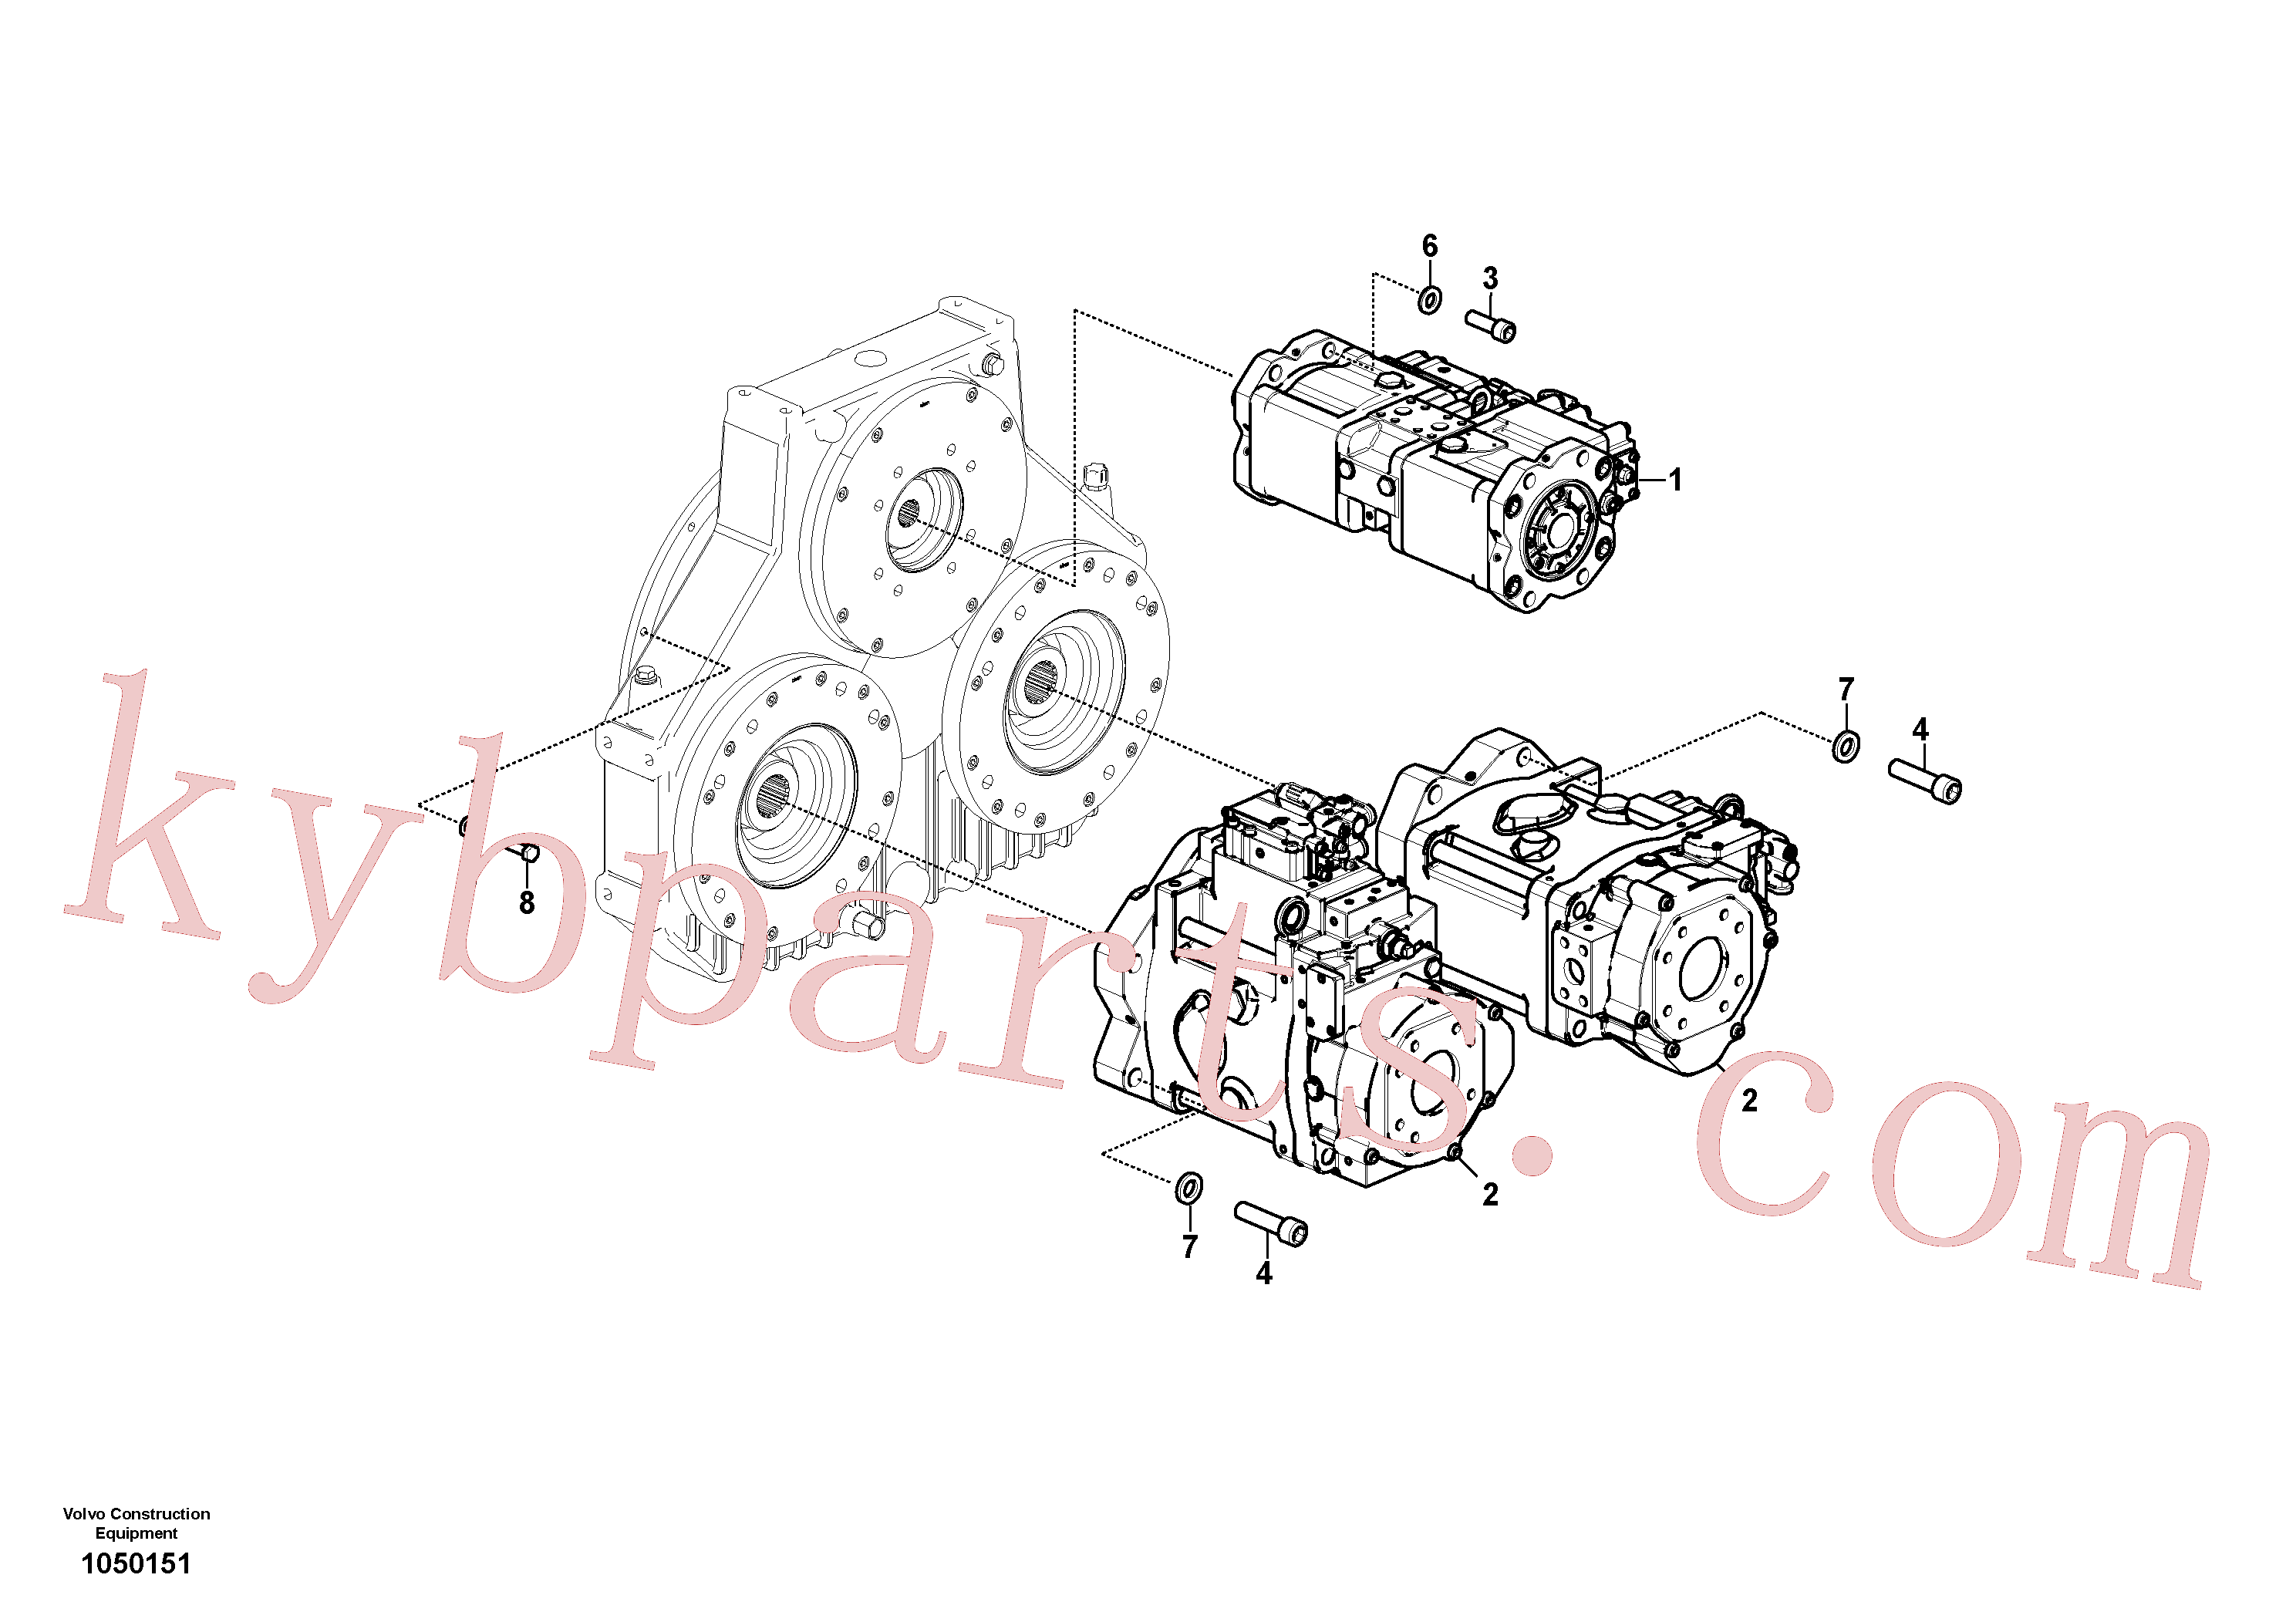 VOE17438657 for Volvo Pump installation(1050151 assembly)